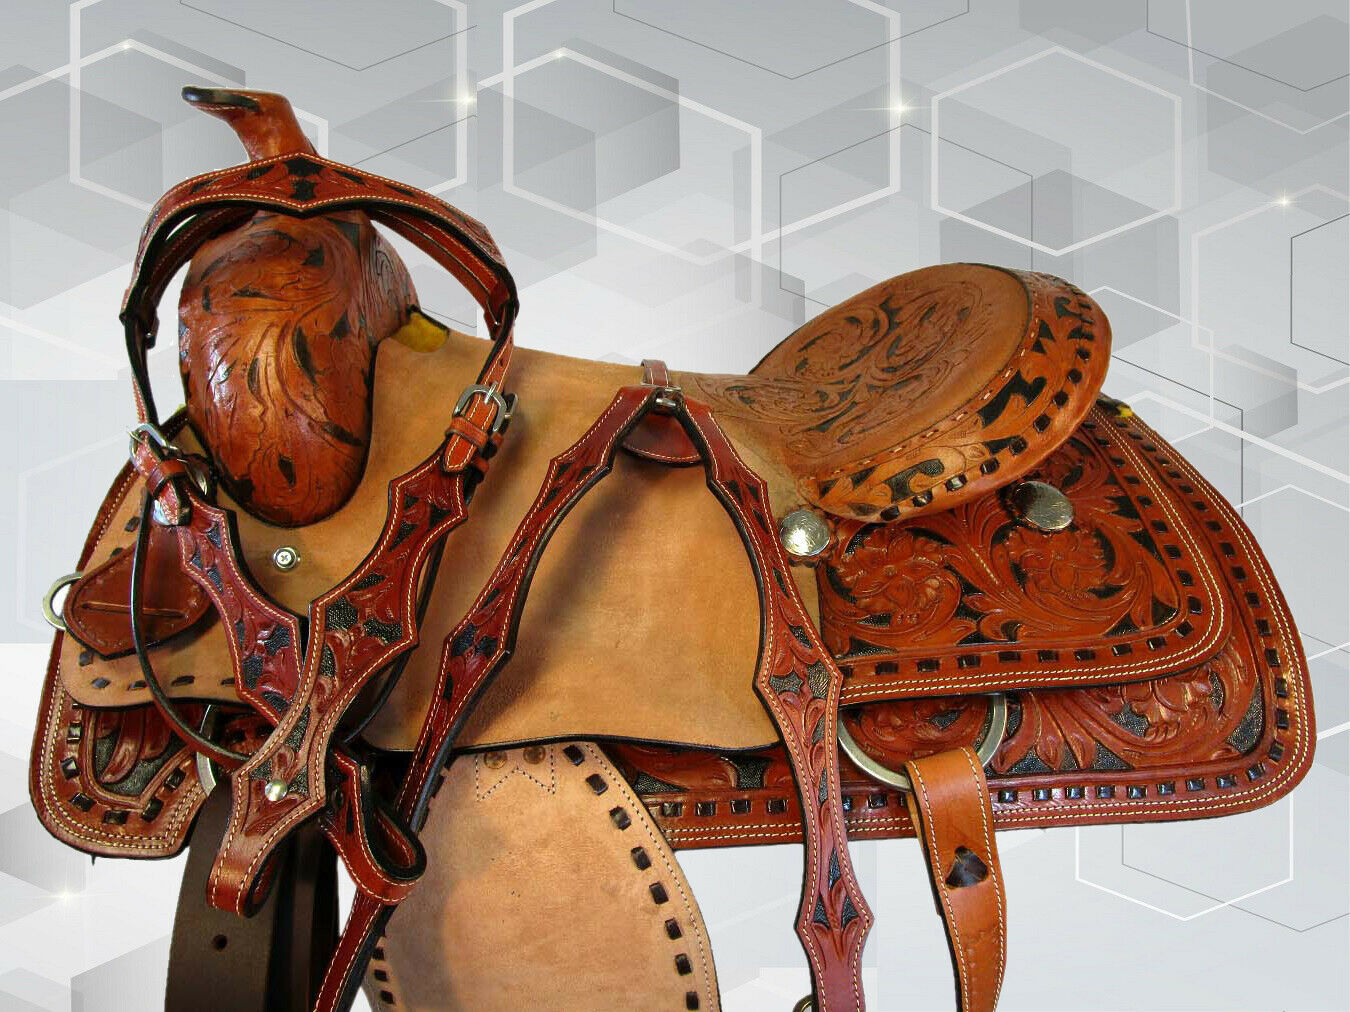 17 16.WESTSTHOHER PLASURE TRAILLE ROLLE ROPER LEATHER SADDLE